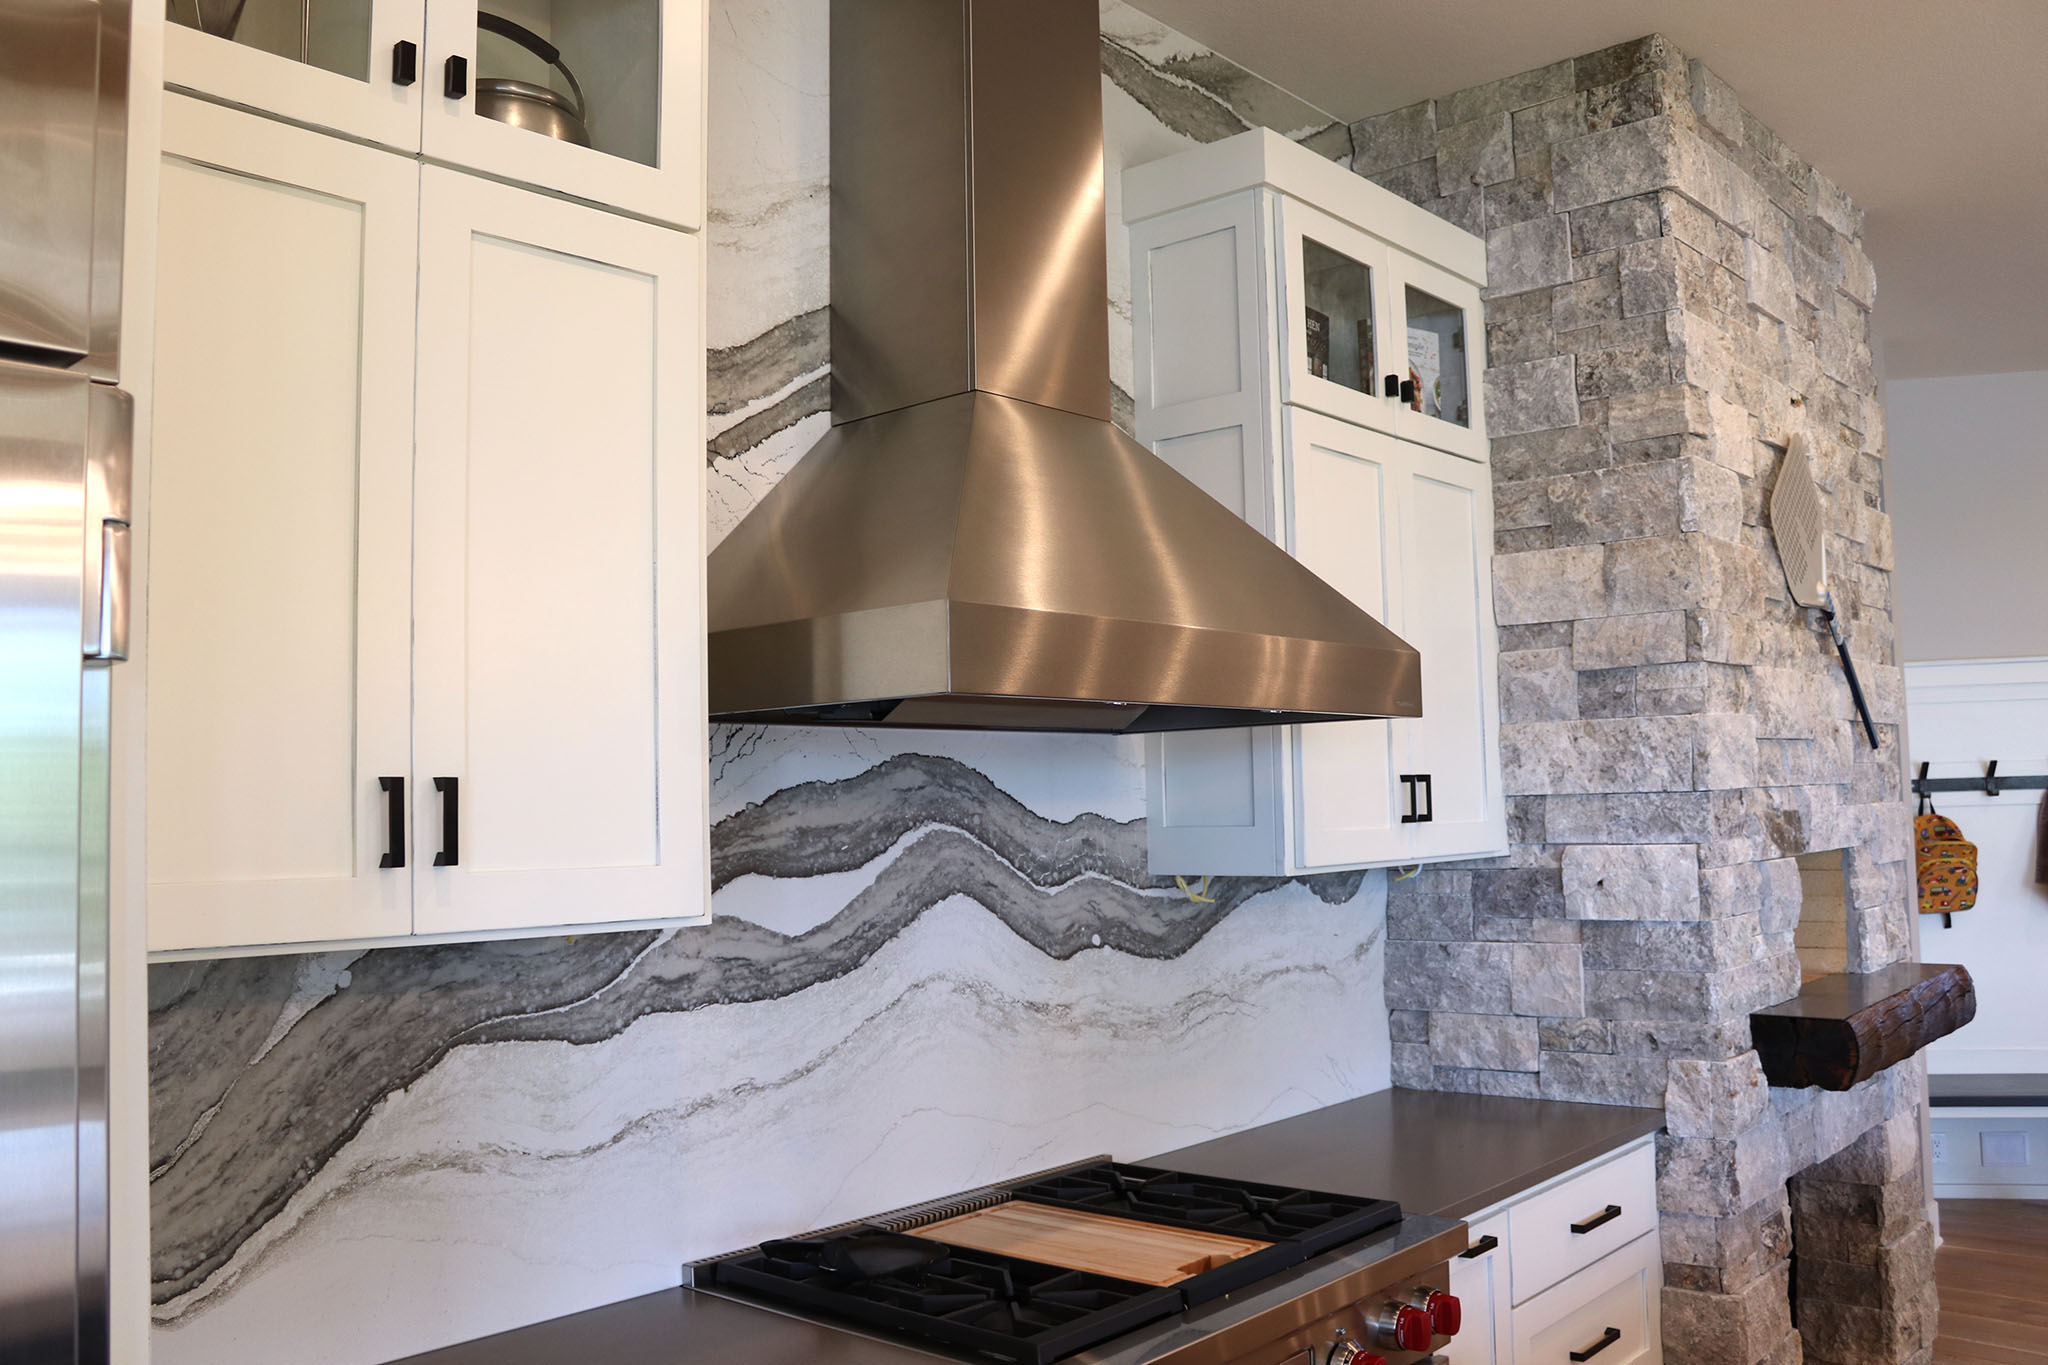 Digitally designed quartz vein in Cambria backsplash with stainless steel hood vent and indoor brick pizza oven